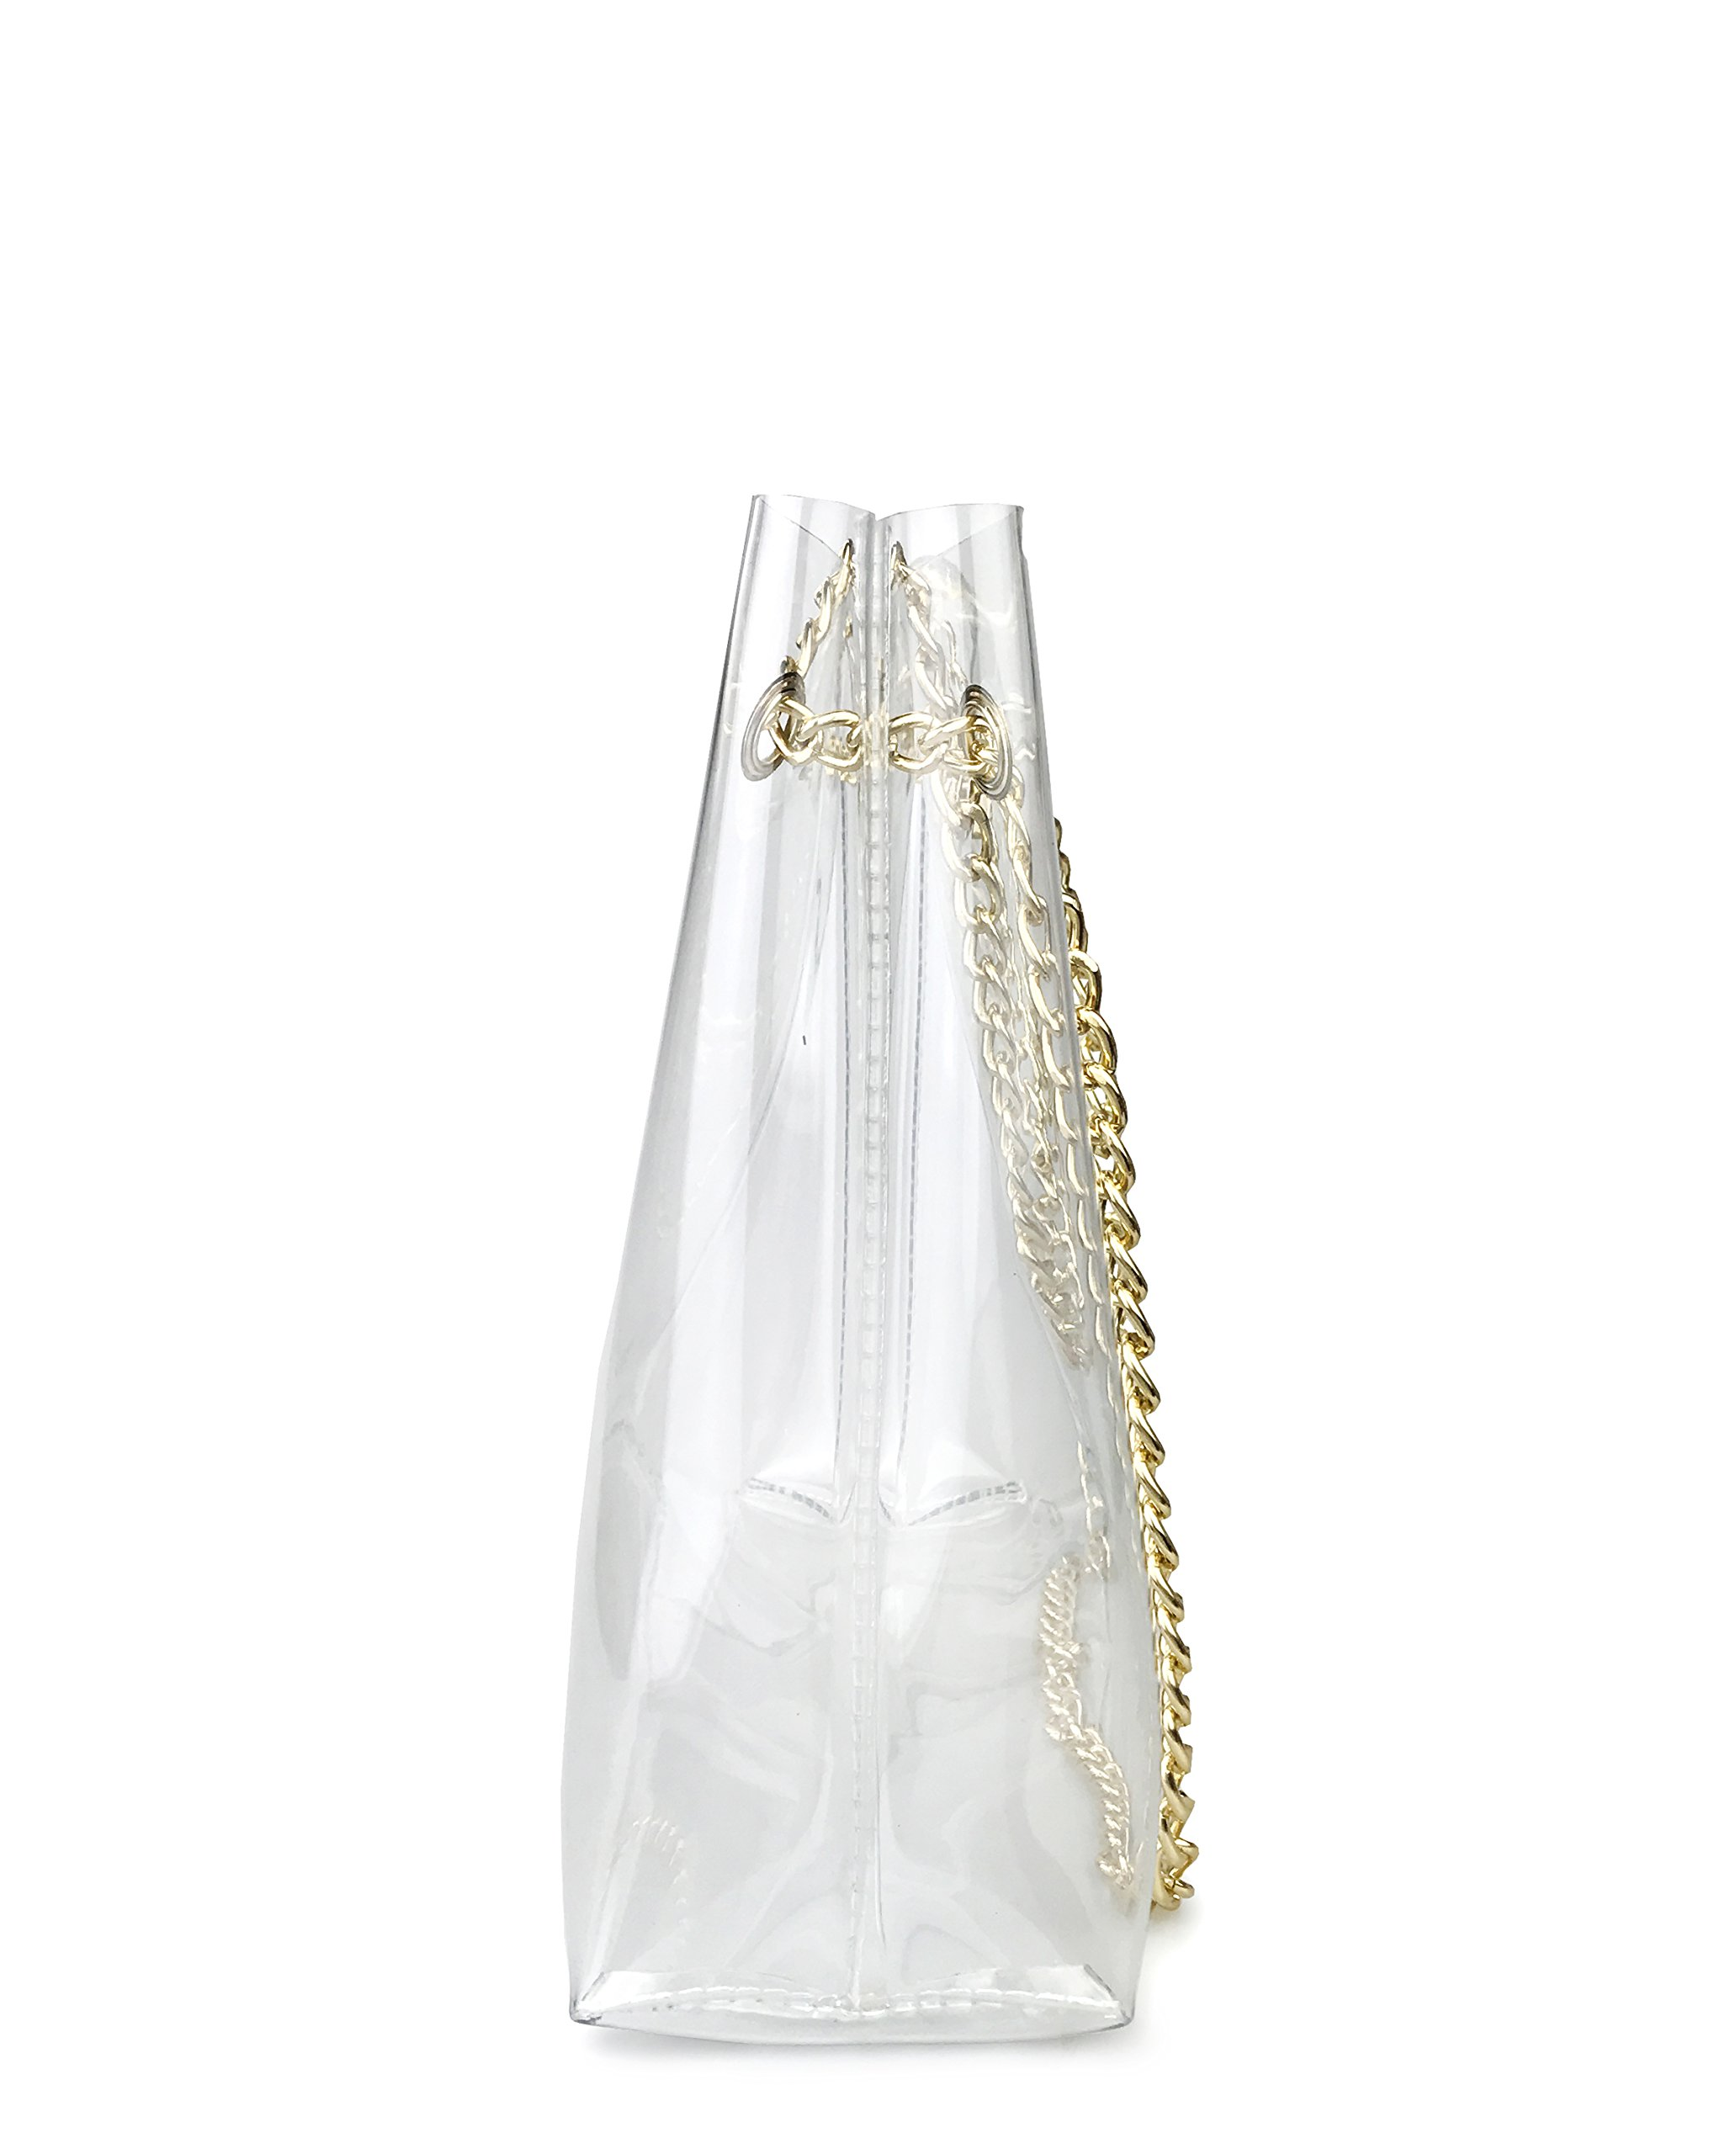 Multifunction Clear Chain Tote with Turn Lock Womens Shoulder Handbag (Clear) by Hoxis (Image #6)